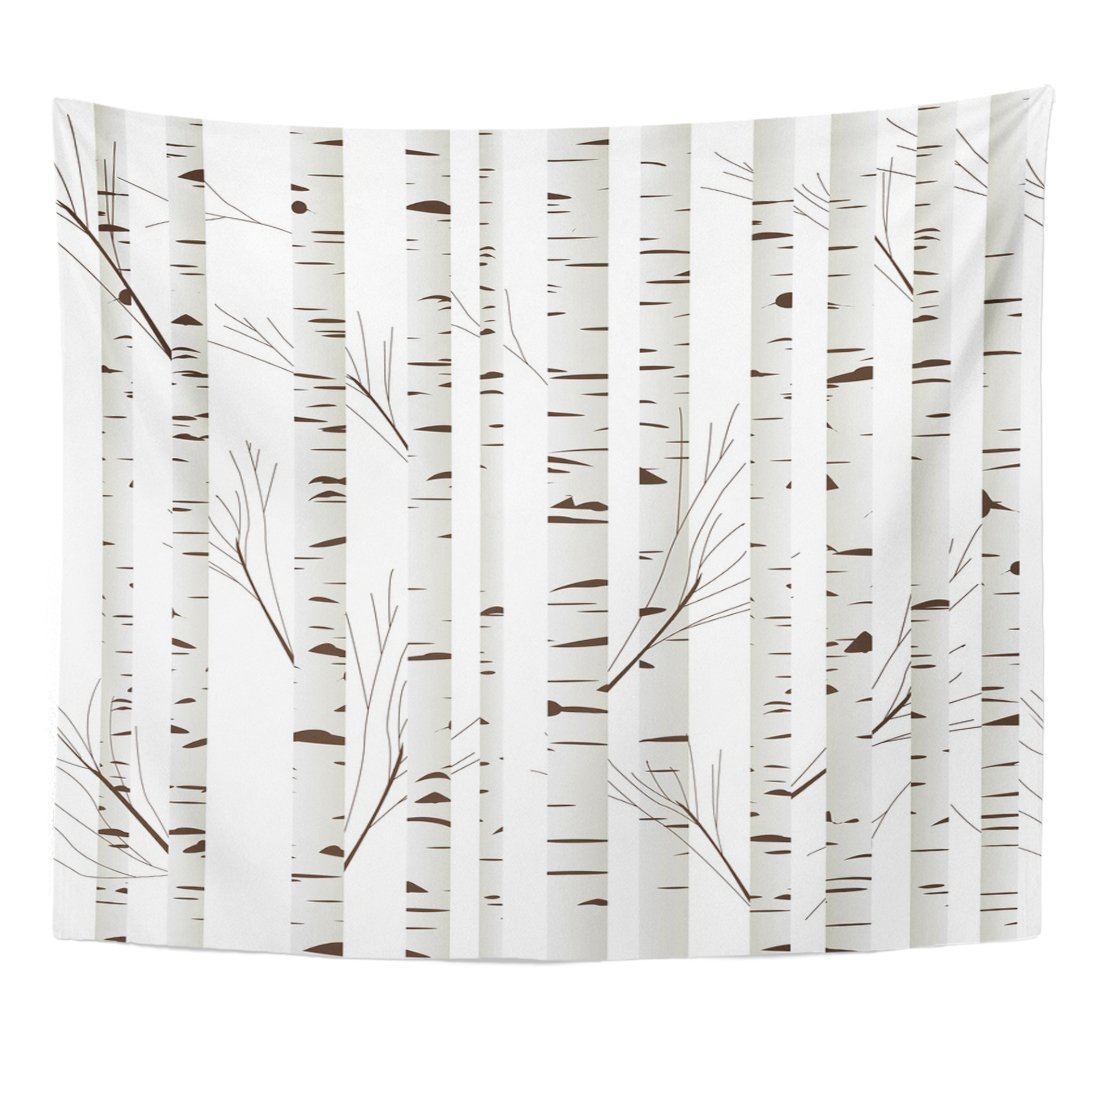 TOMPOP Tapestry Orange Pattern Birch Wood Trees Over Branches White Abstract Home Decor Wall Hanging for Living Room Bedroom Dorm 50x60 Inches